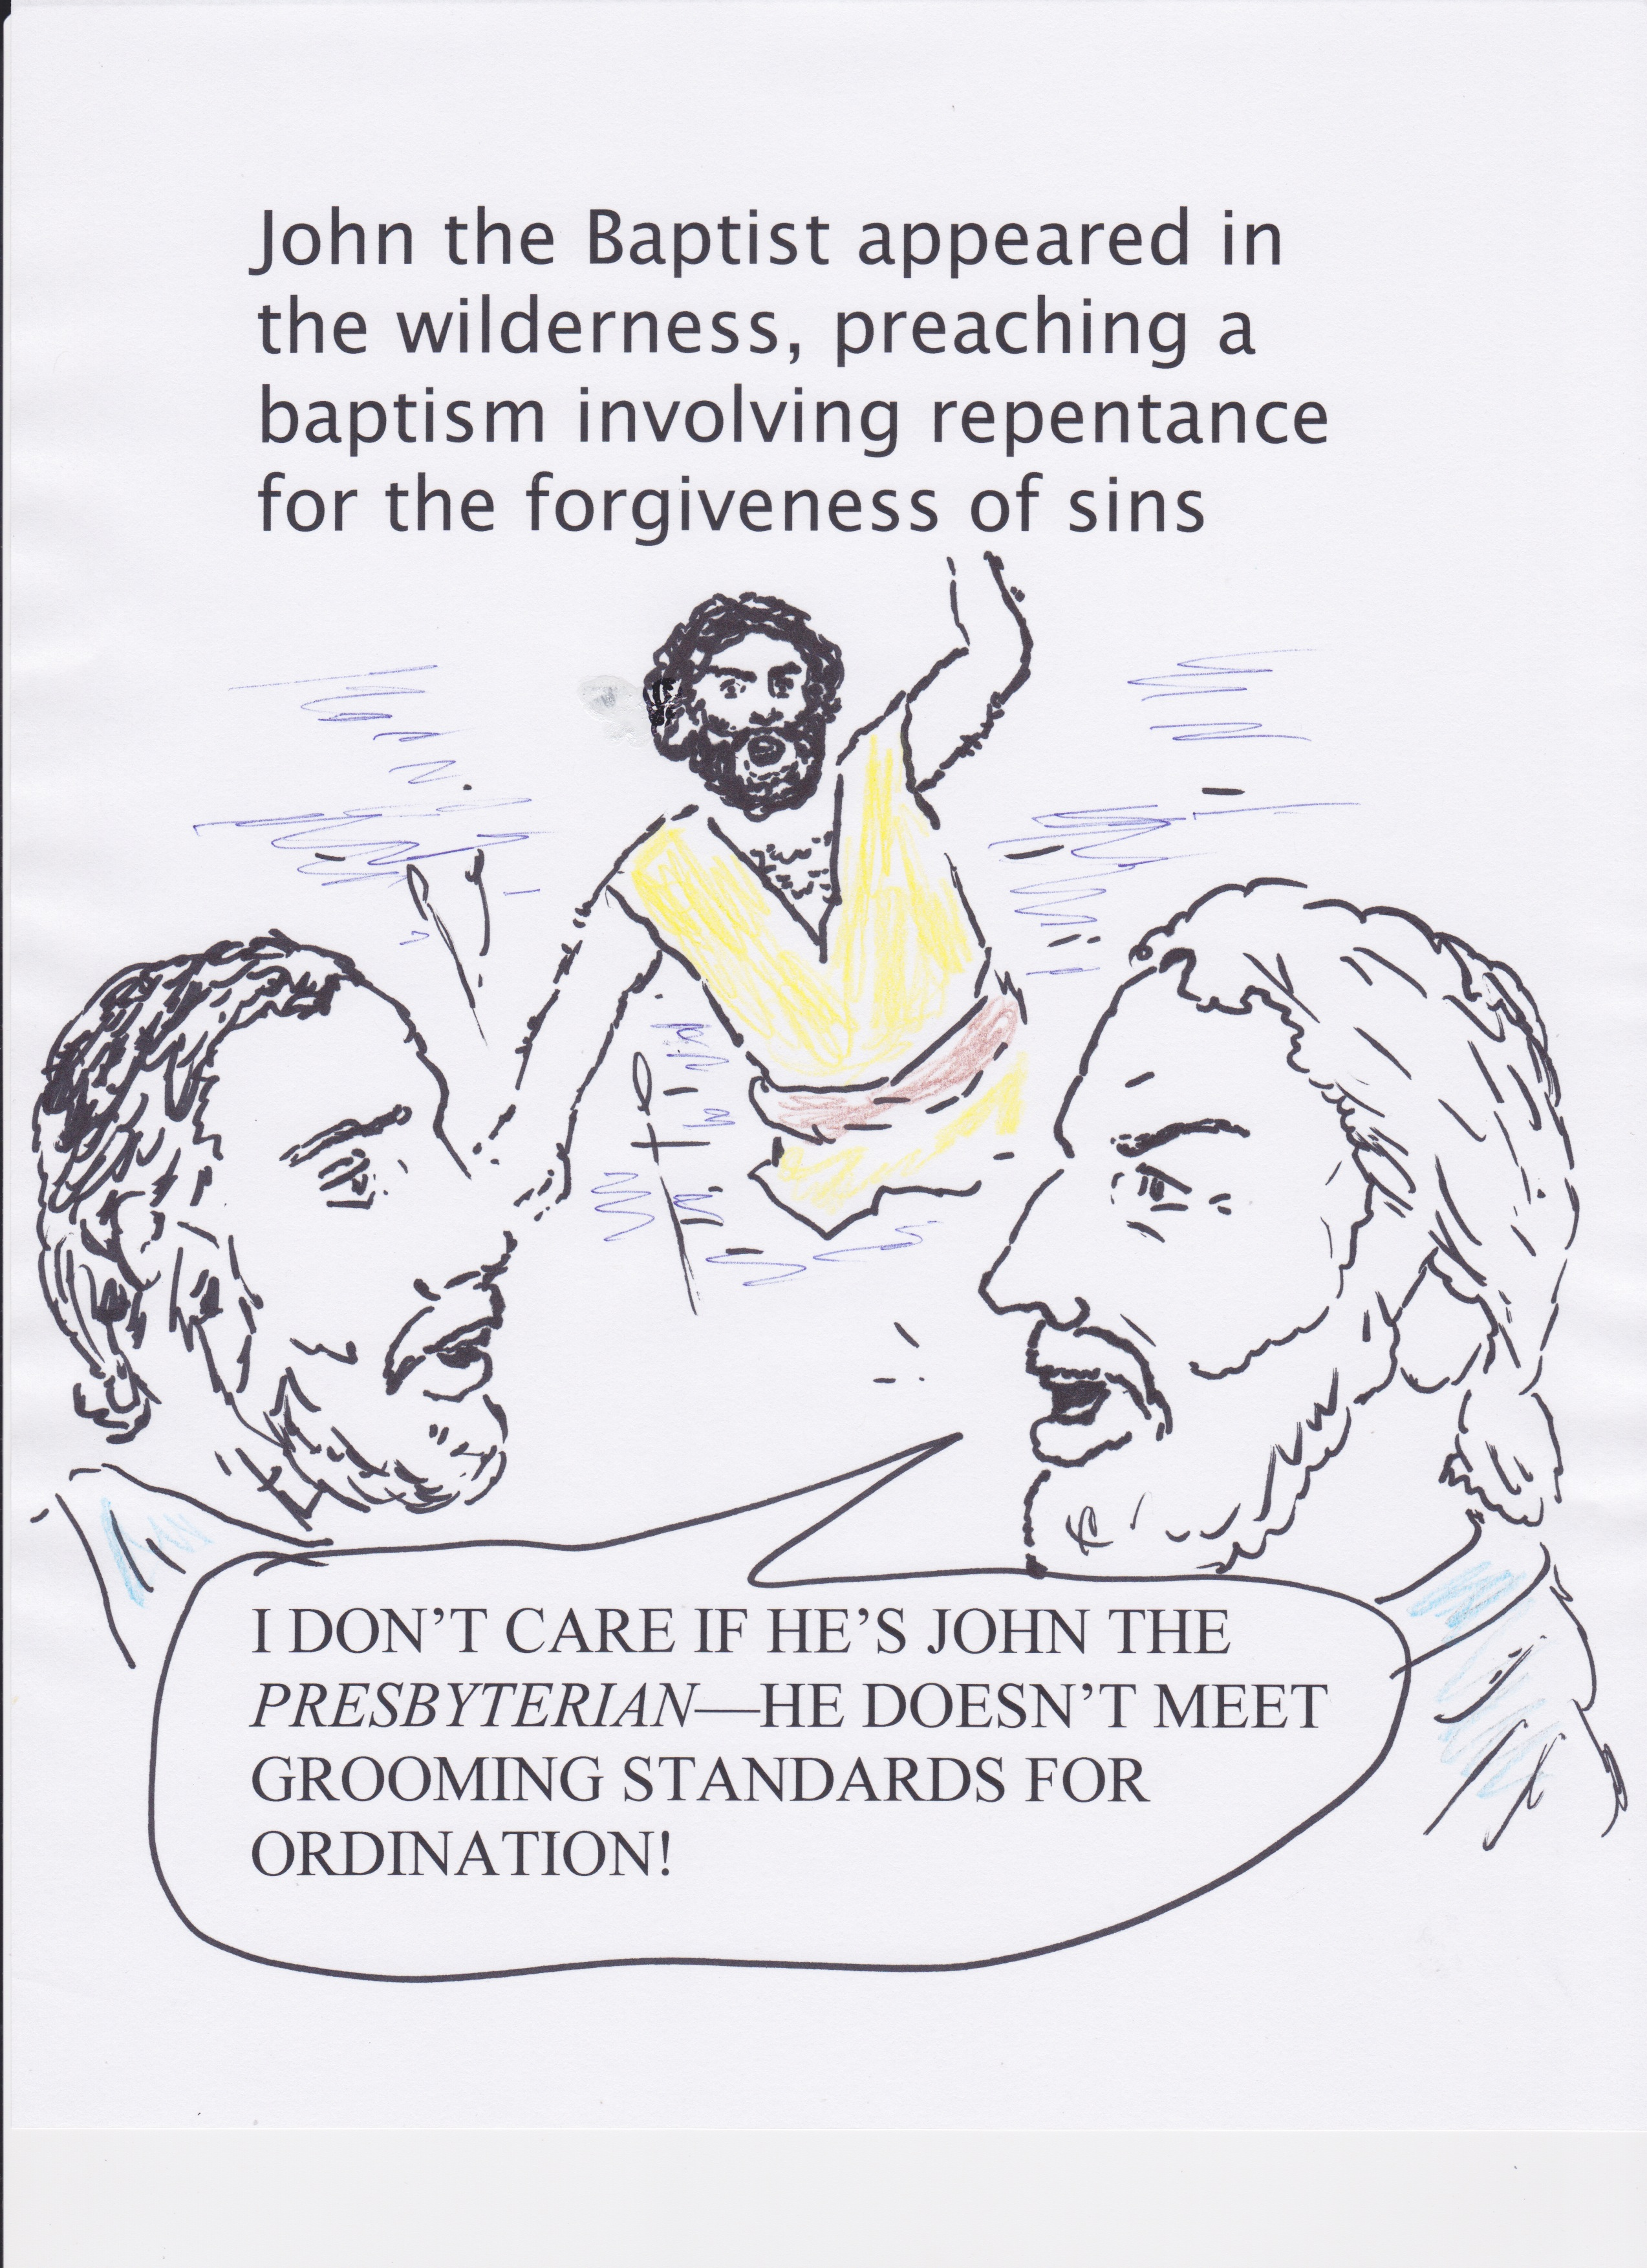 grooming standards for ordination cartoon bible background